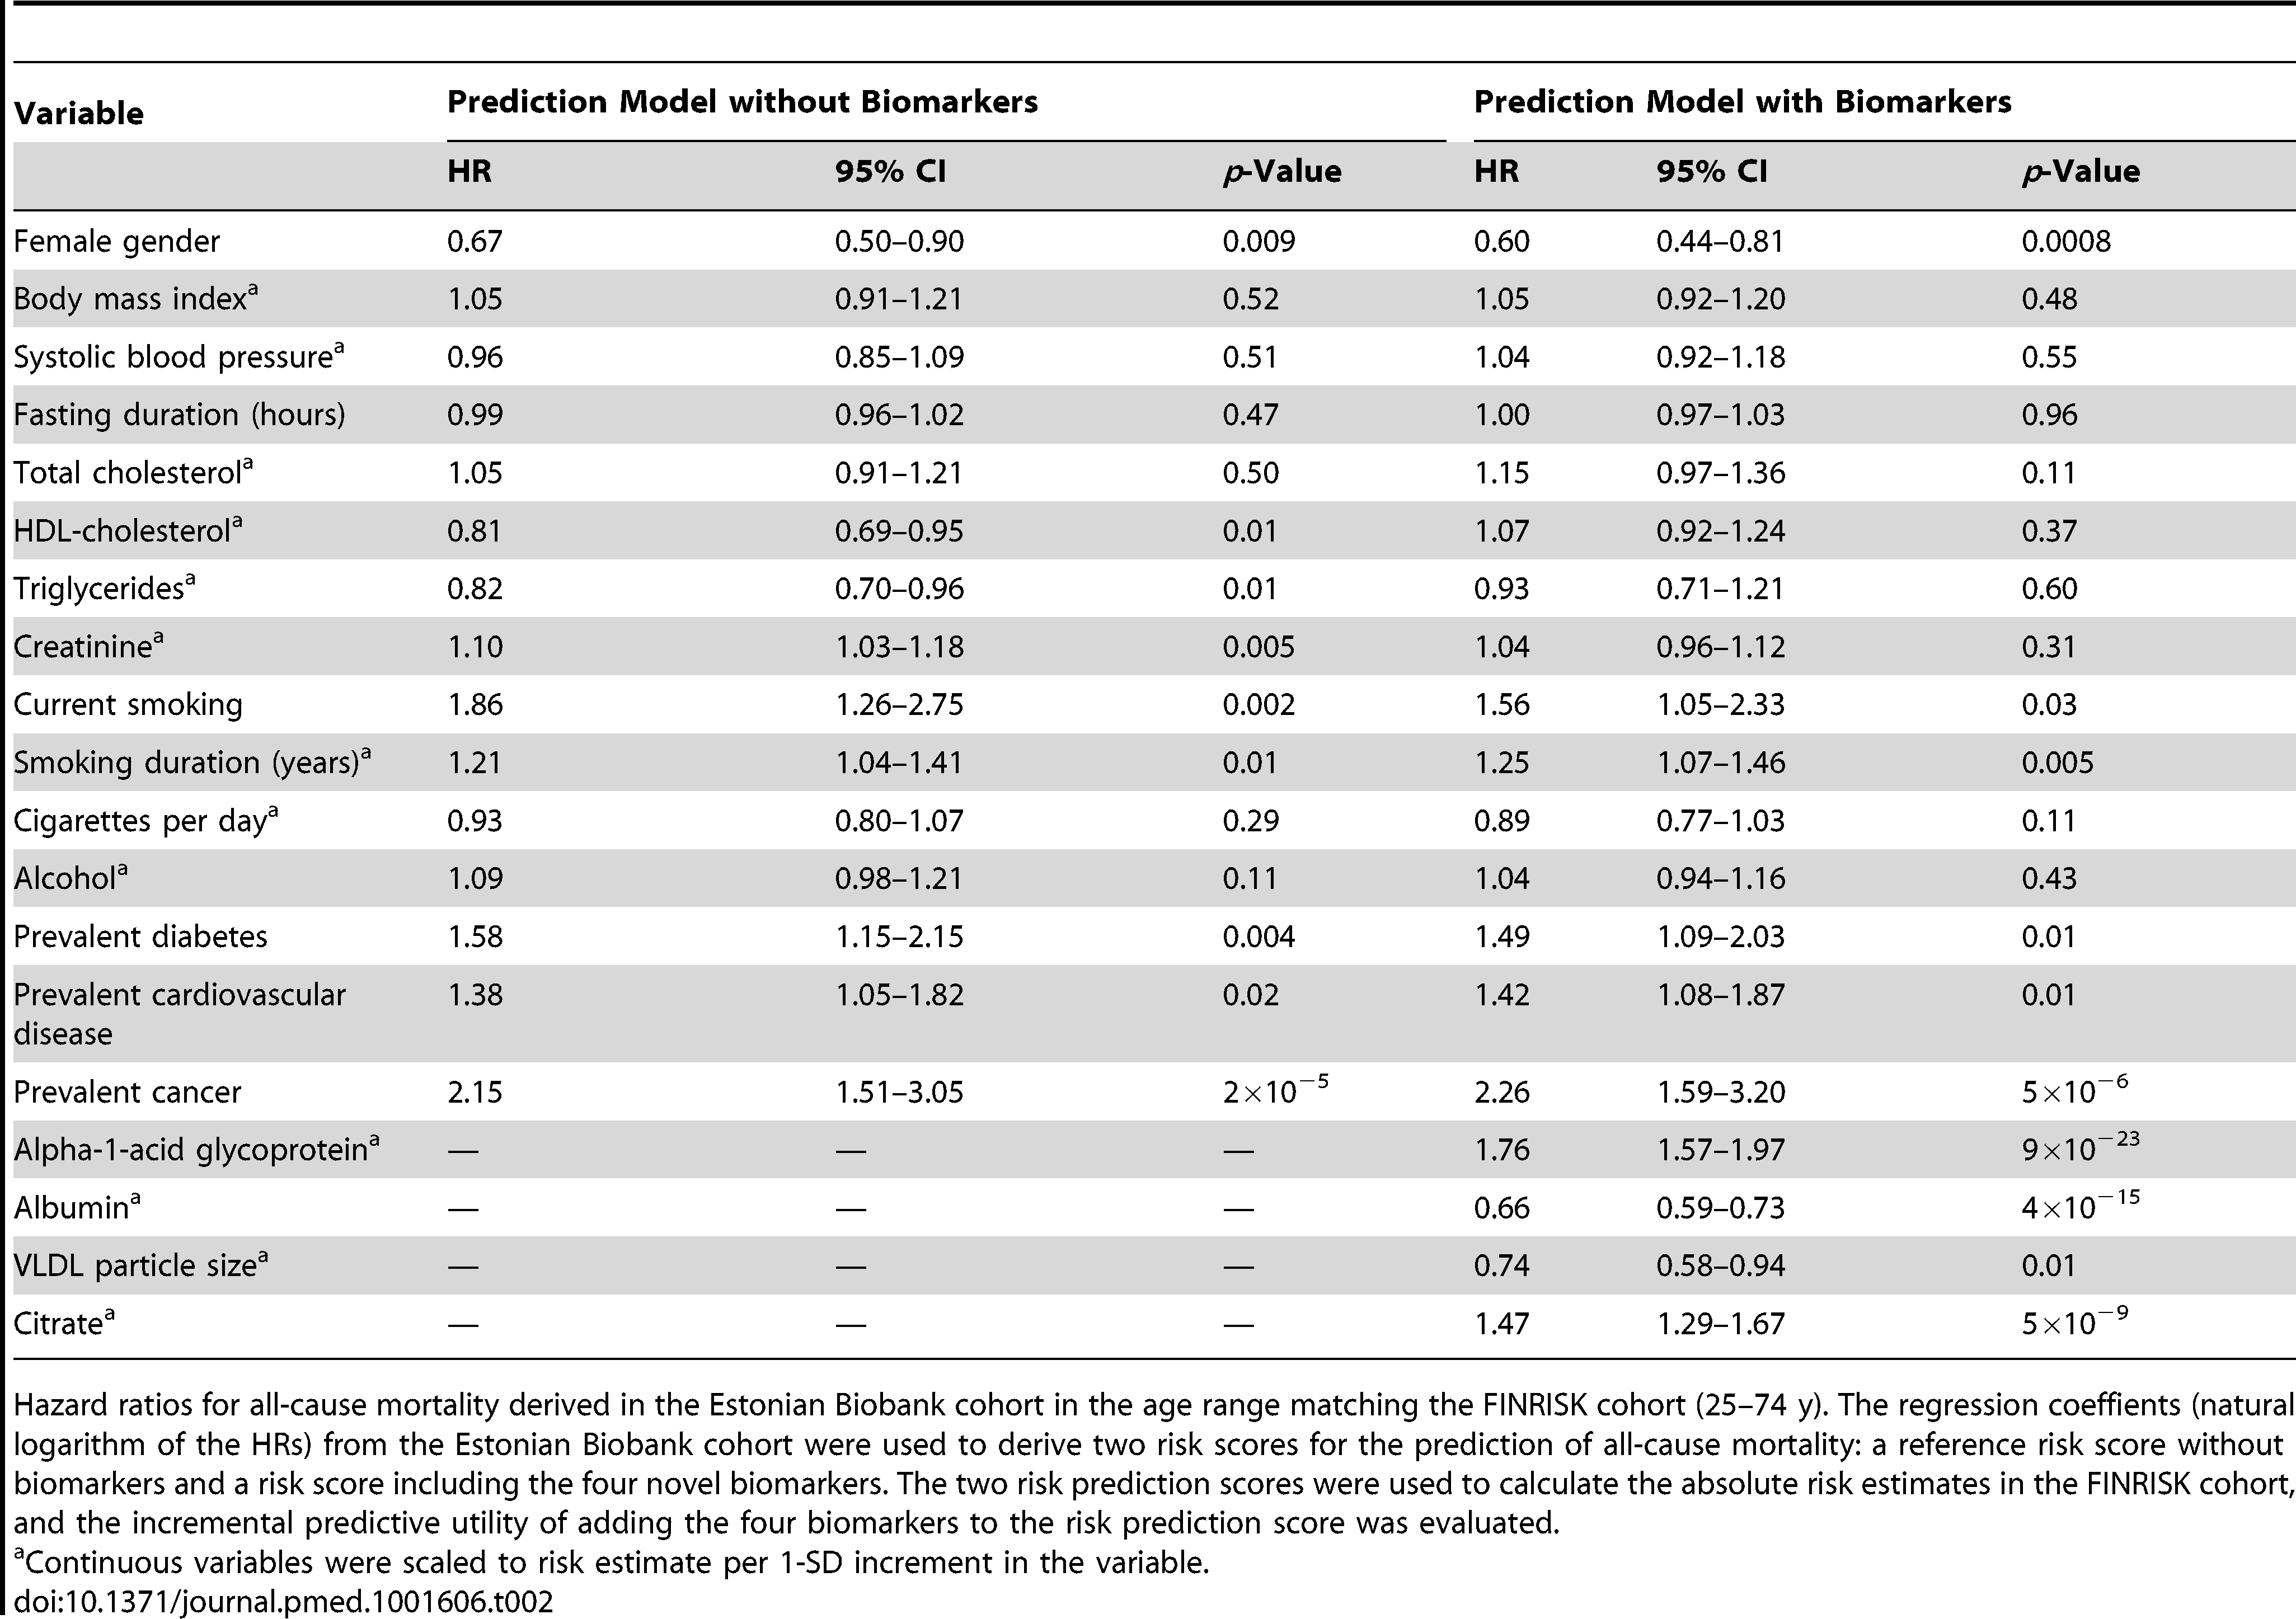 Hazard ratios for all-cause mortality derived in the Estonian Biobank cohort in the age range 25–74 y.